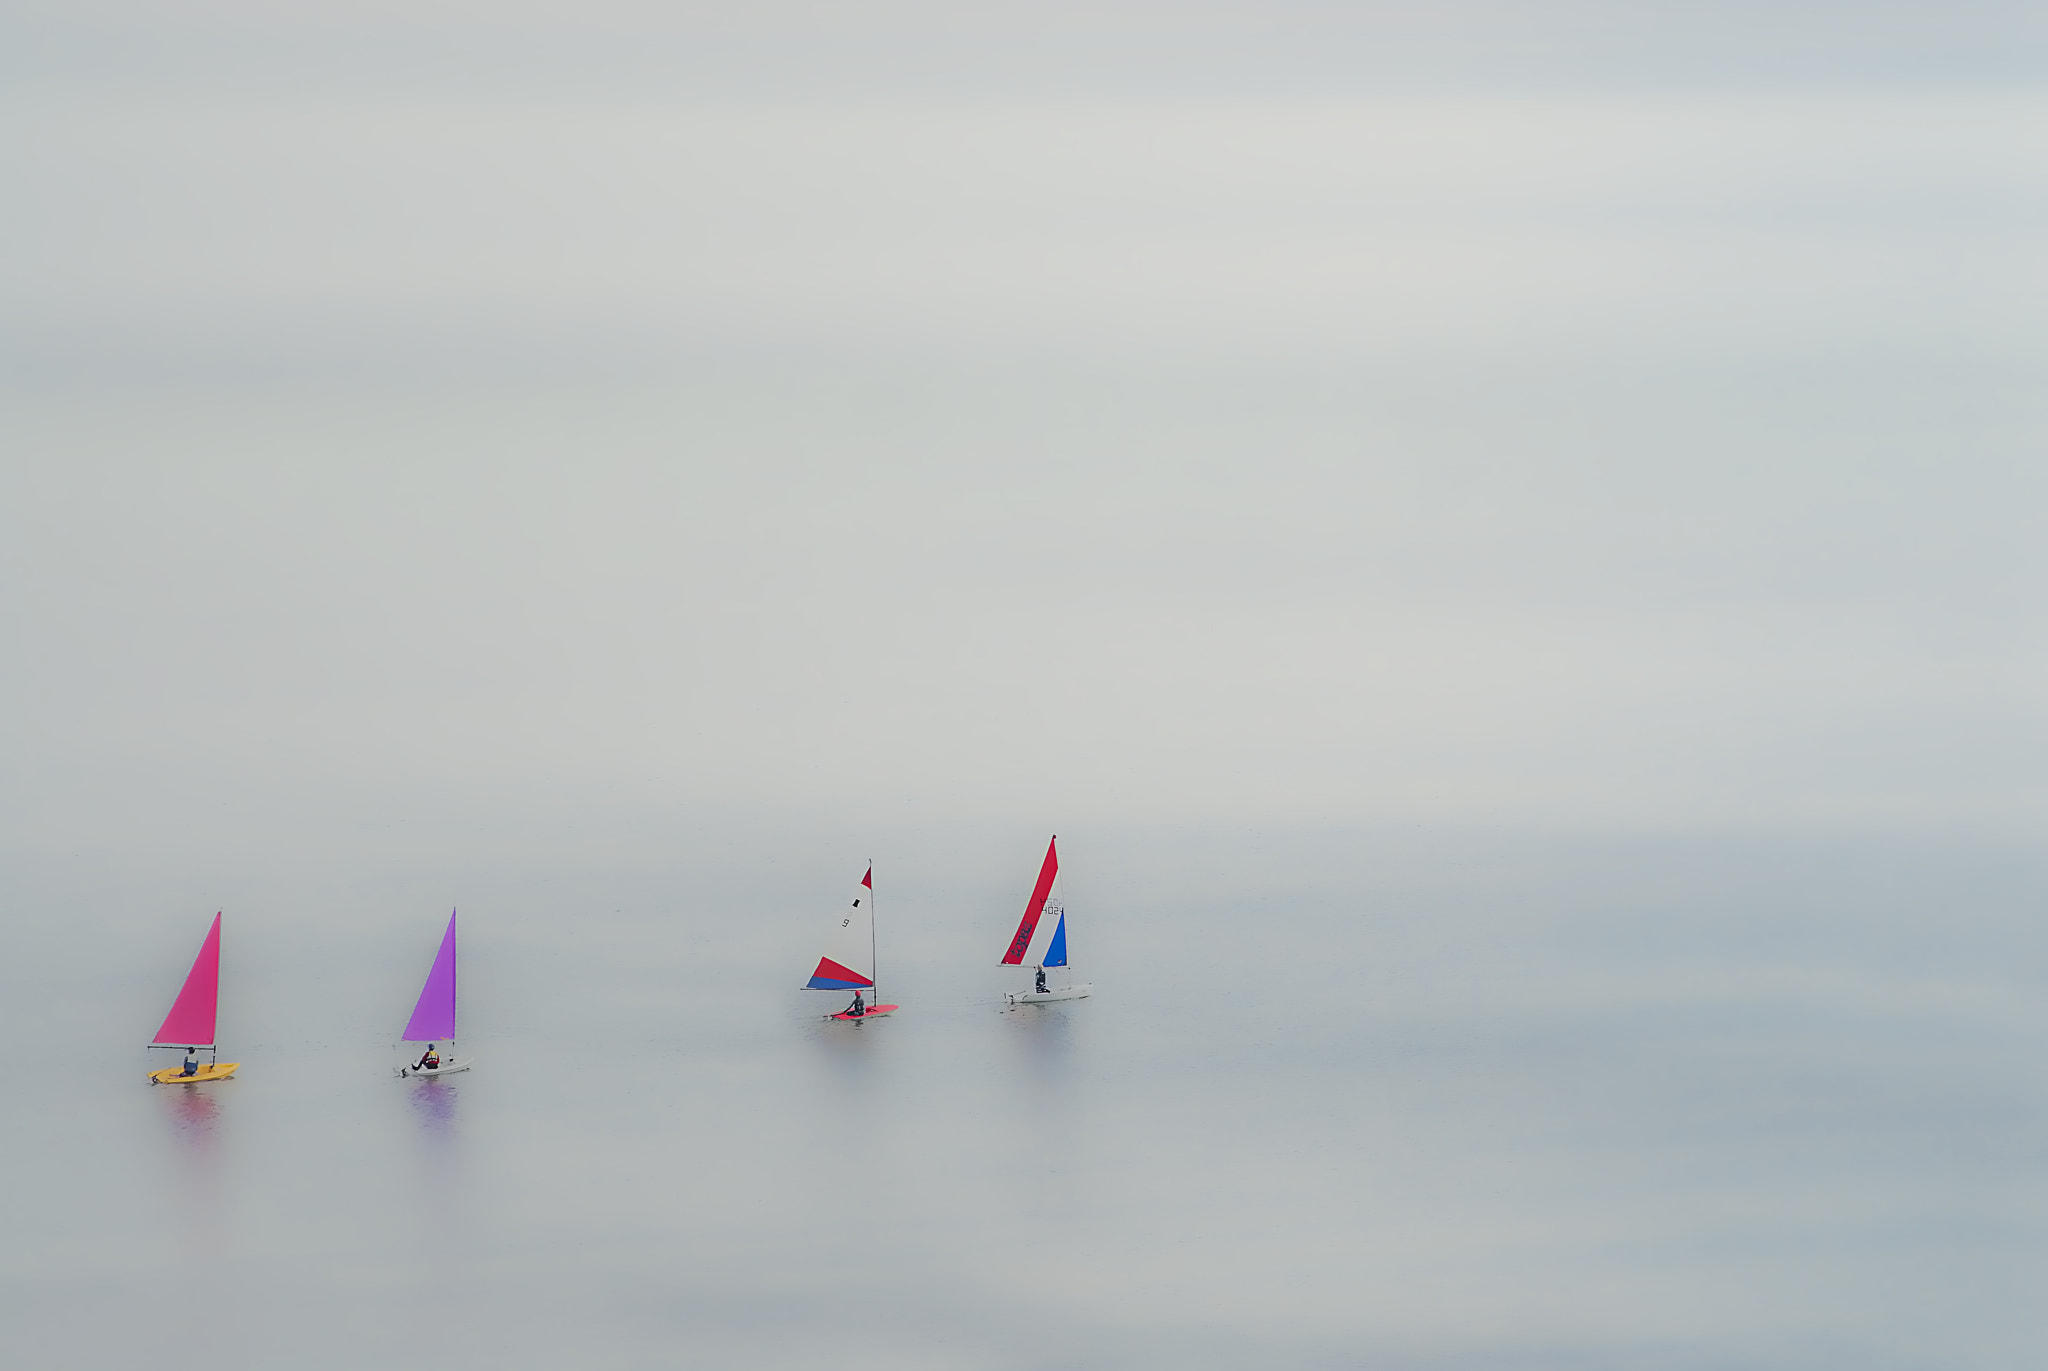 Photograph Four boats in the bay by Lee Bailey on 500px